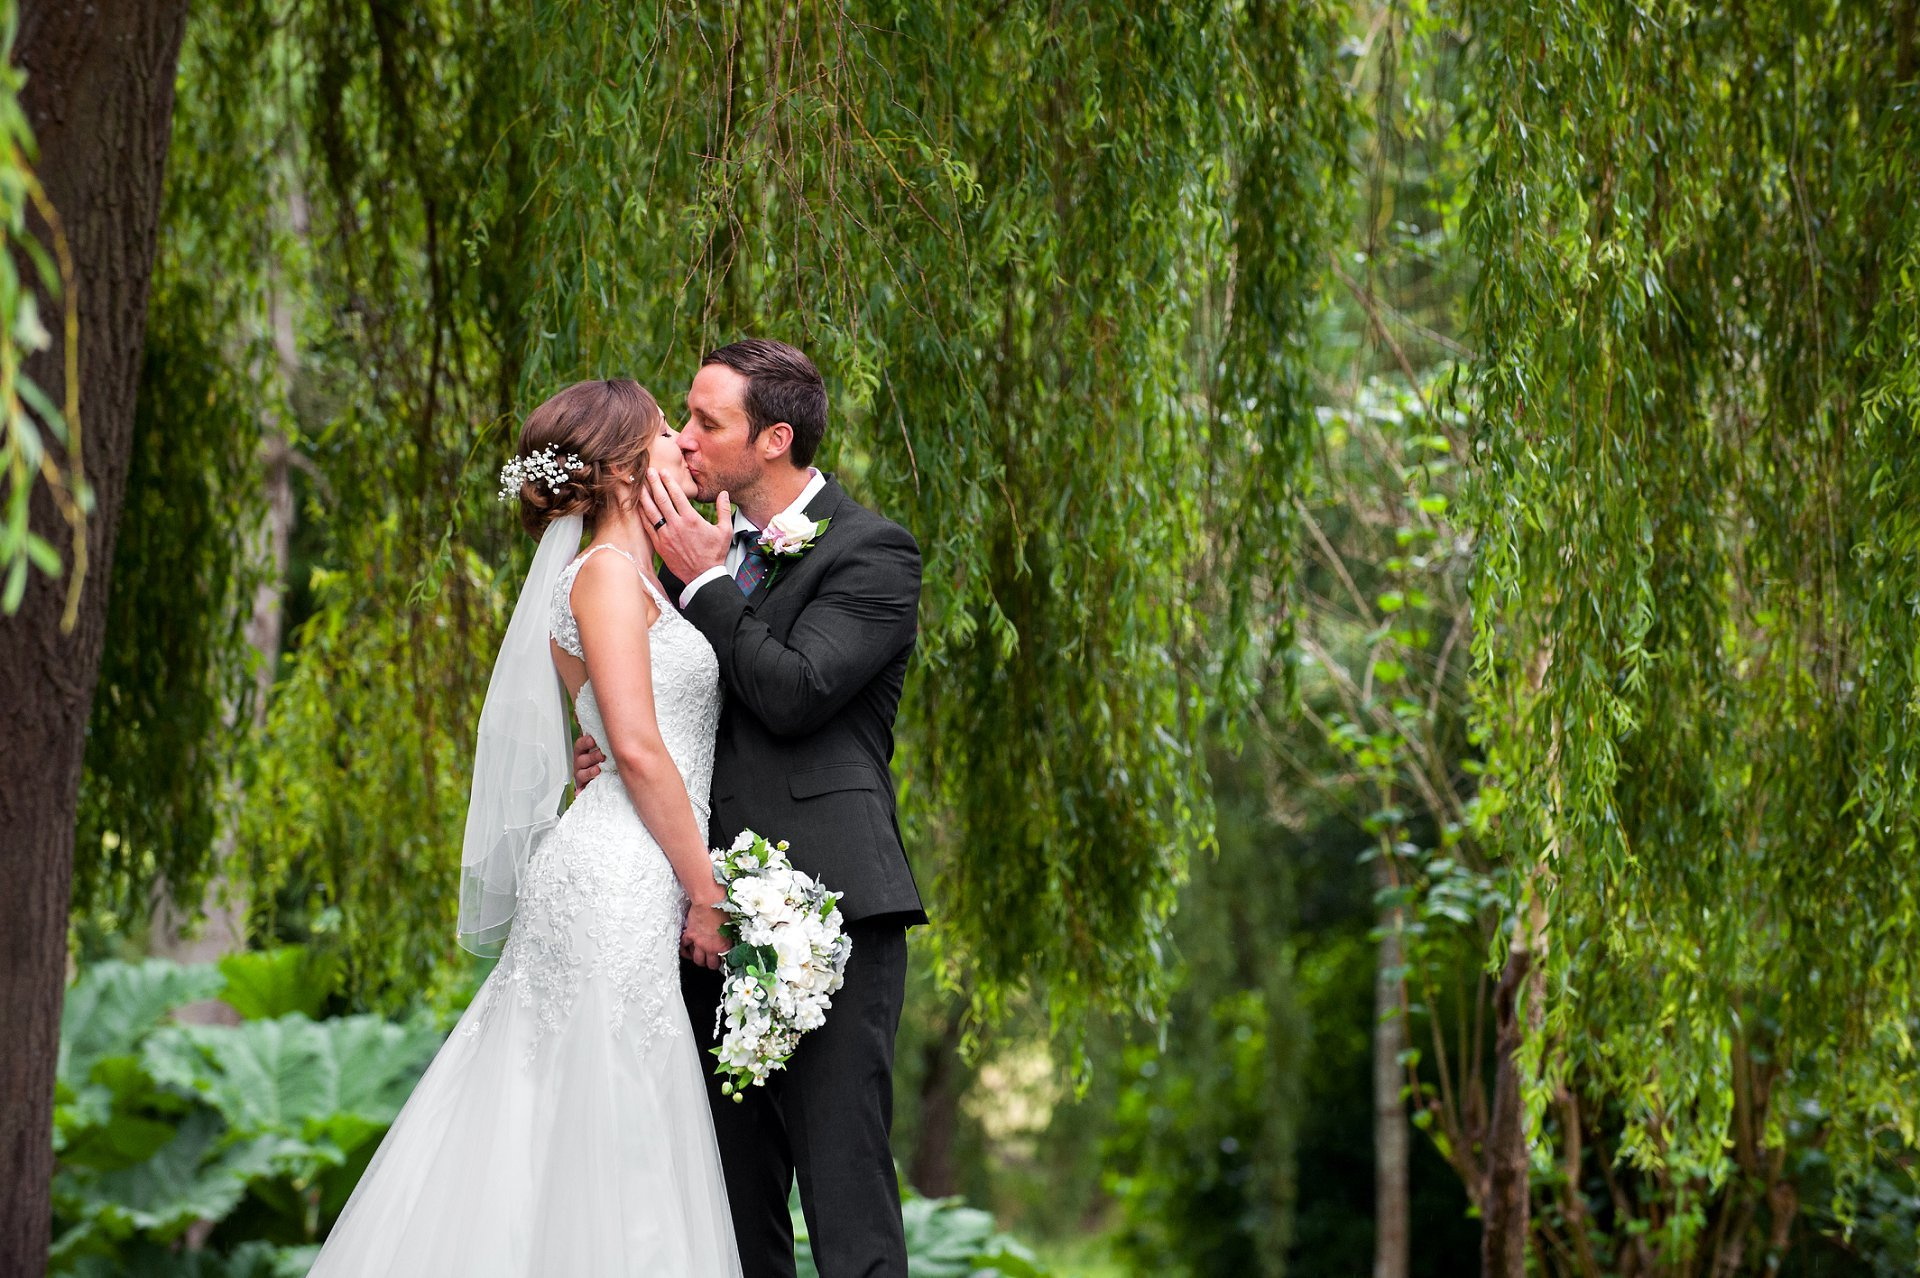 Wedding photography Leeds Castle - Leeds Castle wedding photographer Emma Duggan is a Leeds Castle specialist and offers short hourly coverage from one hour onwards. The bride and groom are beneath the famous weeping willow tree at Leeds Castle celebrating their wedding day with a romantic kiss